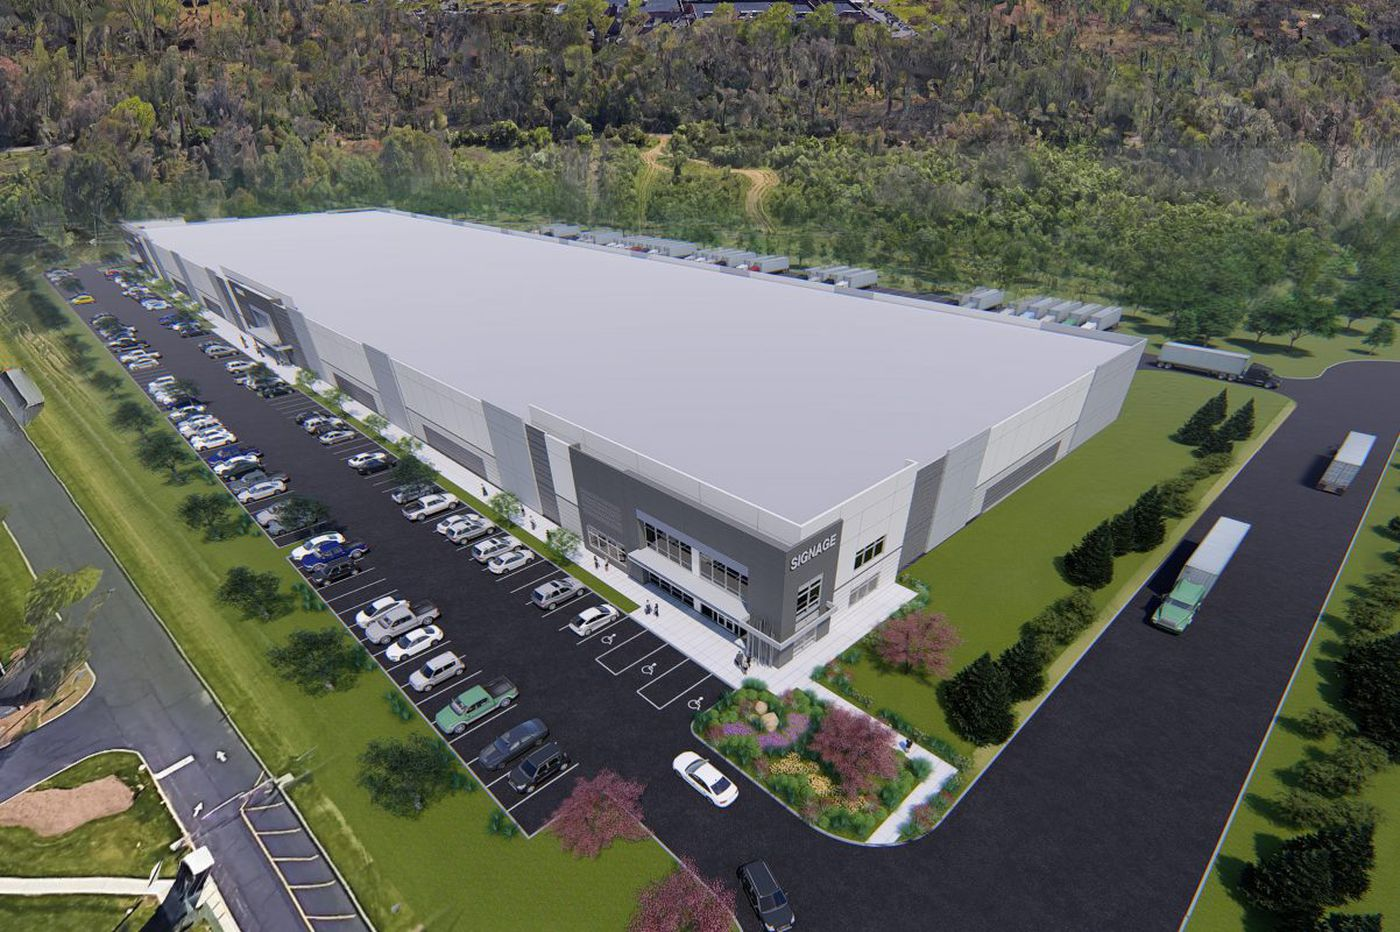 'Speculative' distribution hub for e-commerce businesses underway in Northeast Philly